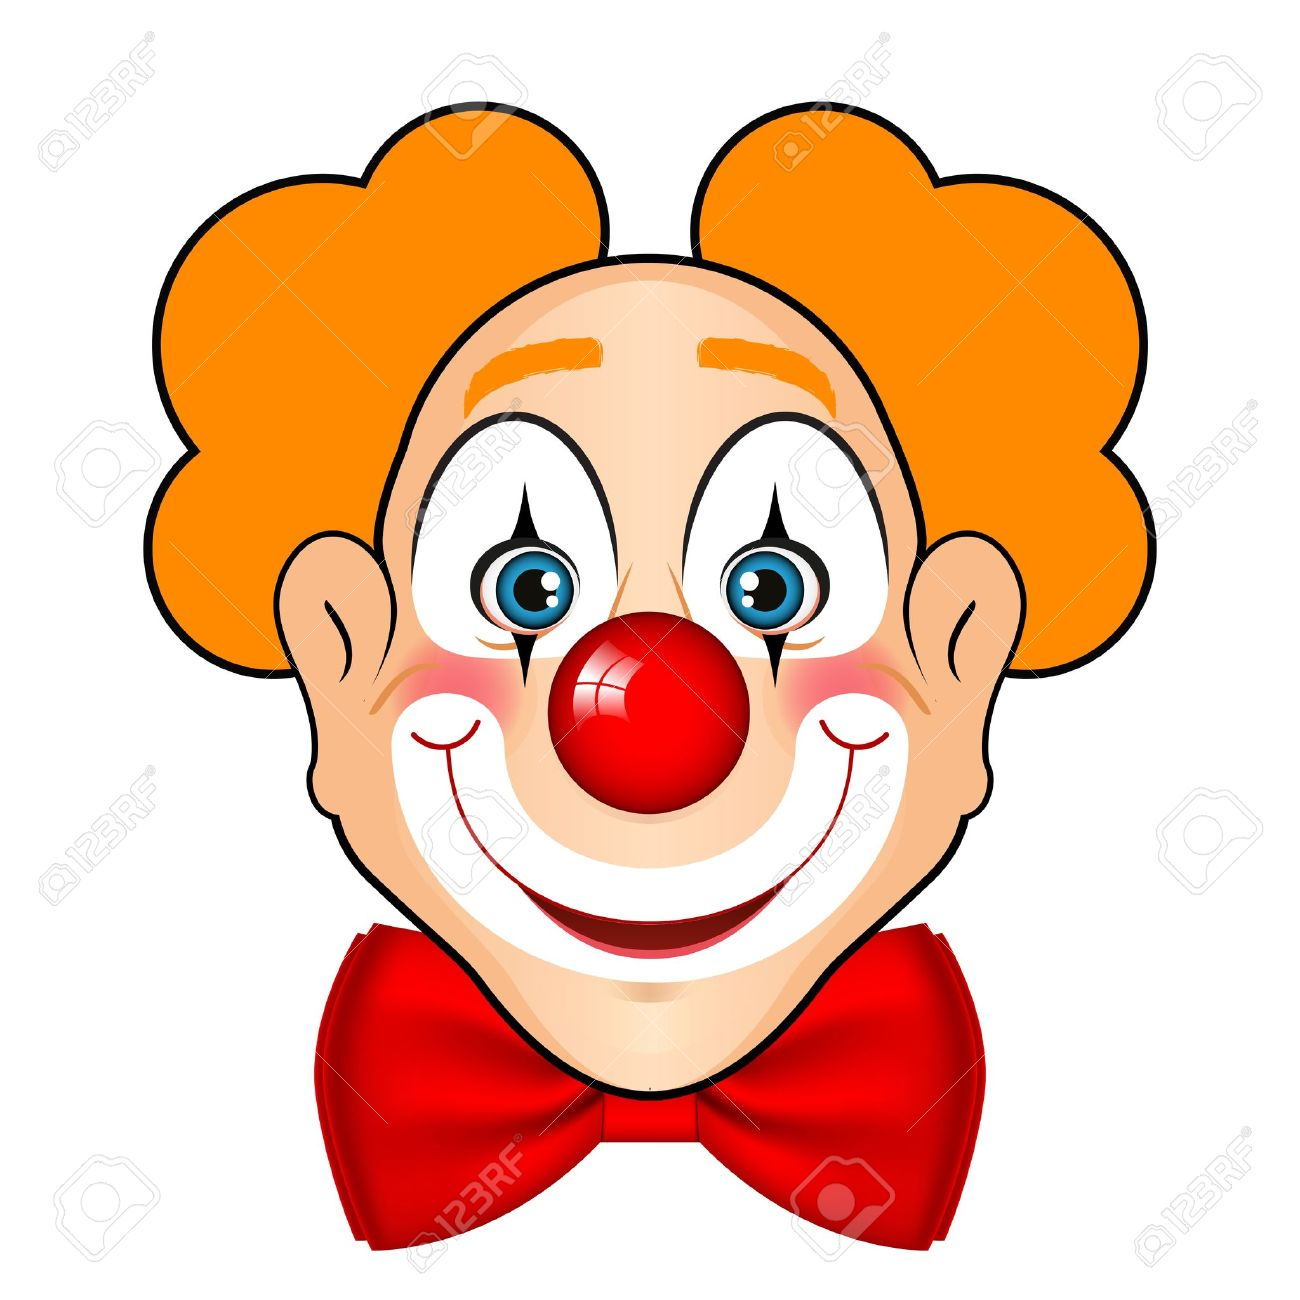 illustration of smiling clown with red bow Stock Vector - 20008444